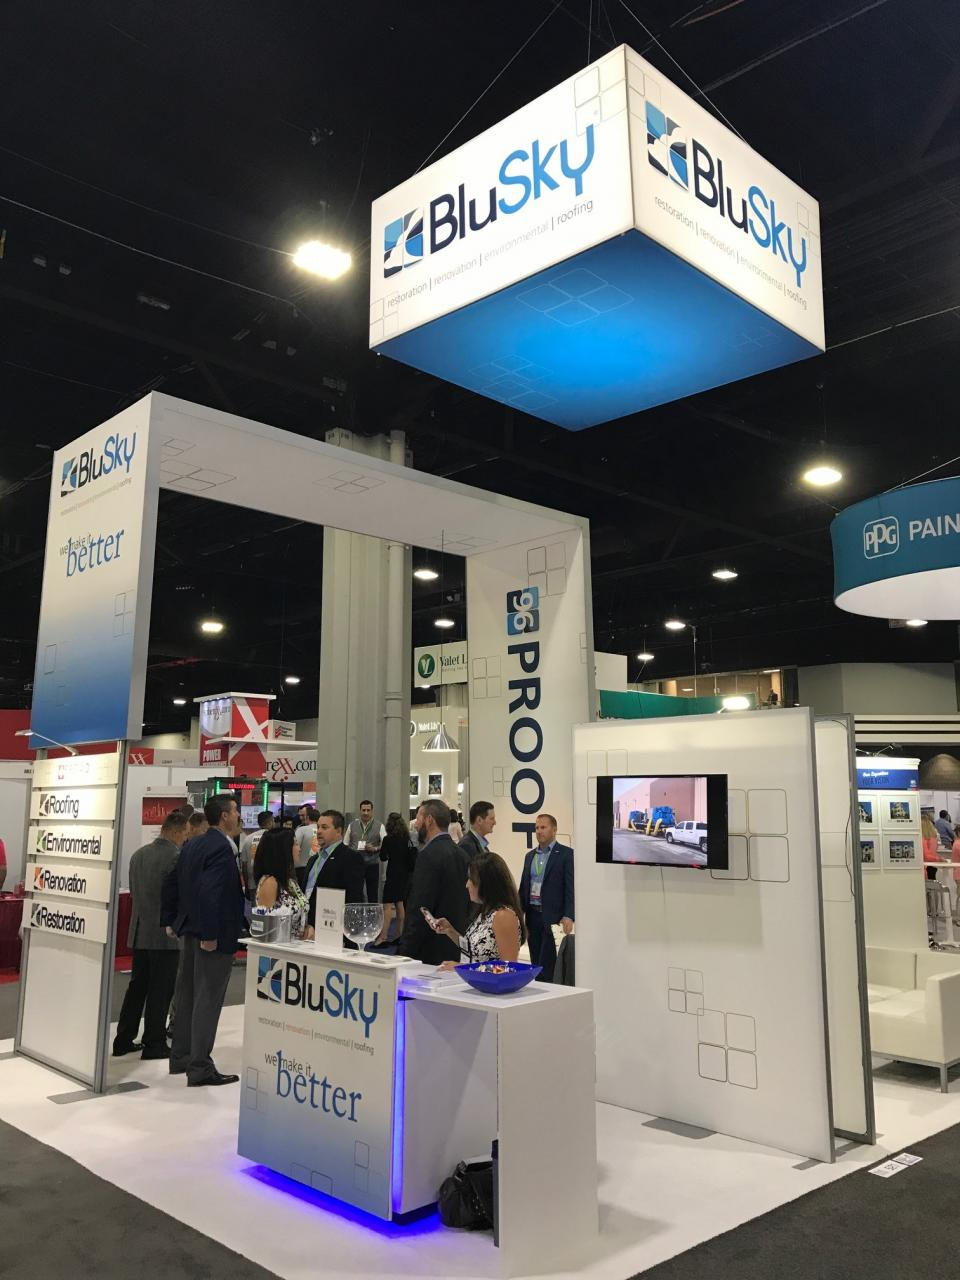 BluSky staff working booth at 2017 NAA Education Conference in Atlanta, GA.